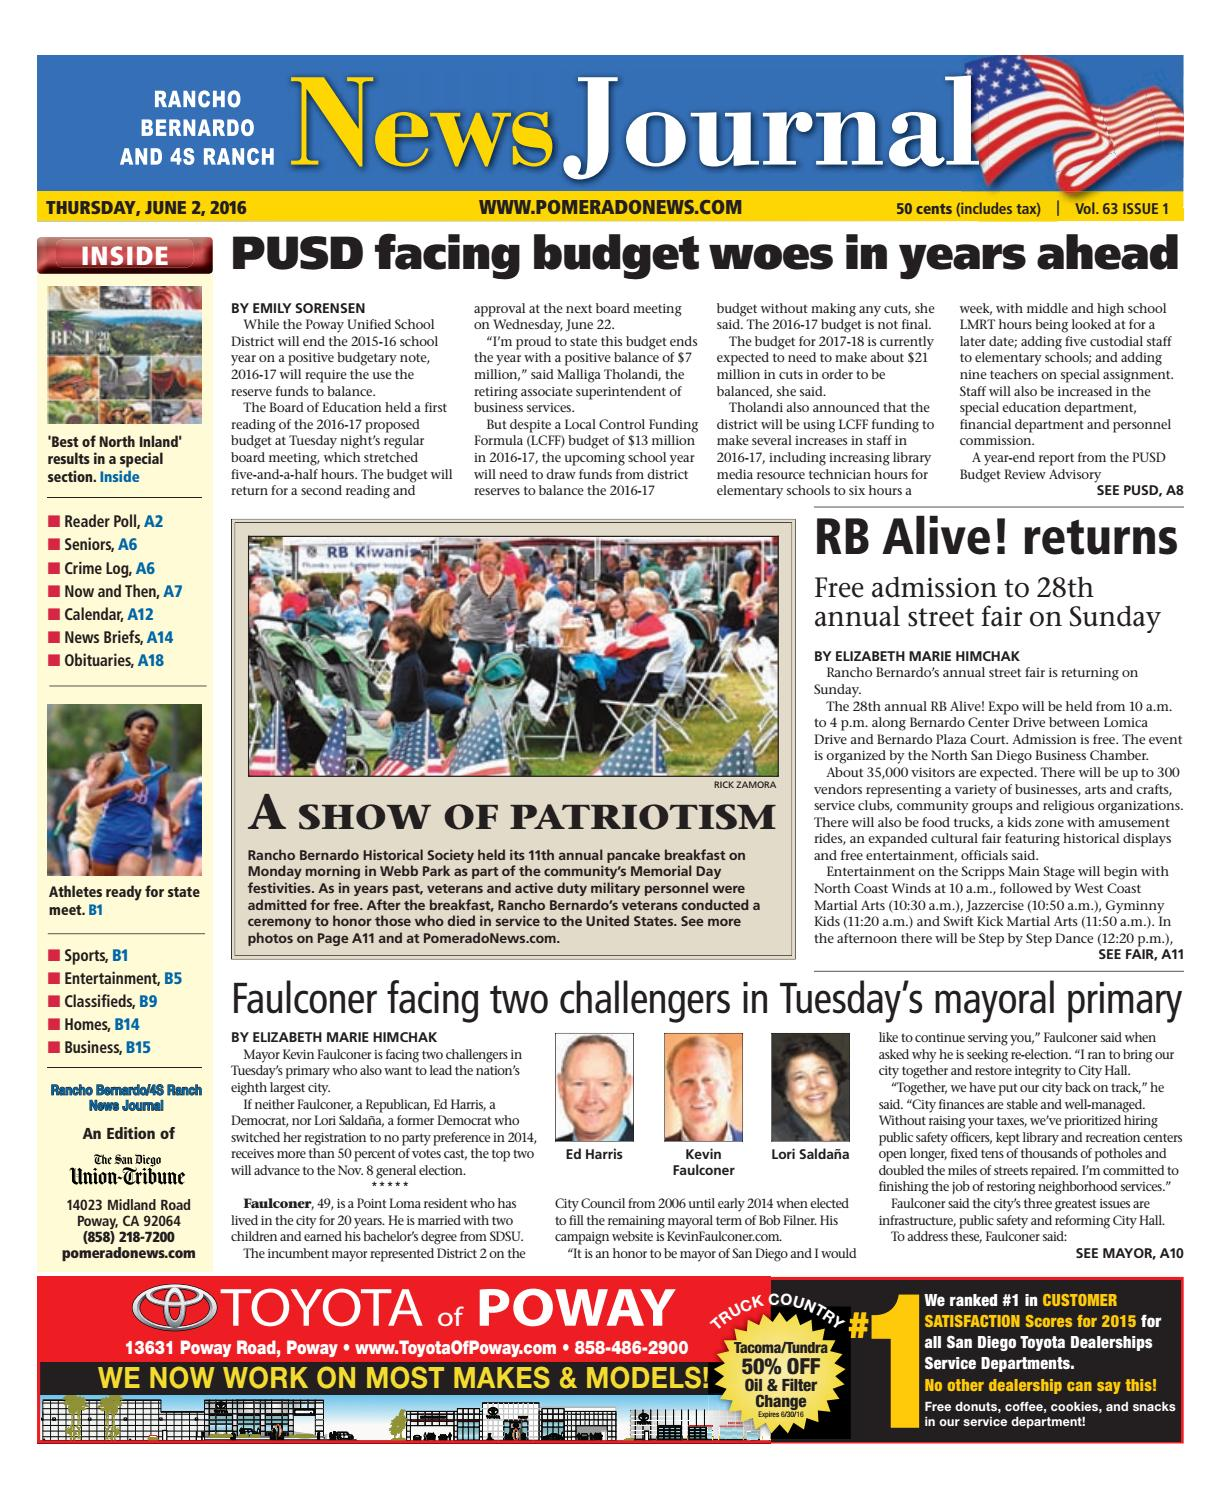 Rancho bernardo news journal 06 02 16 by MainStreet Media - issuu